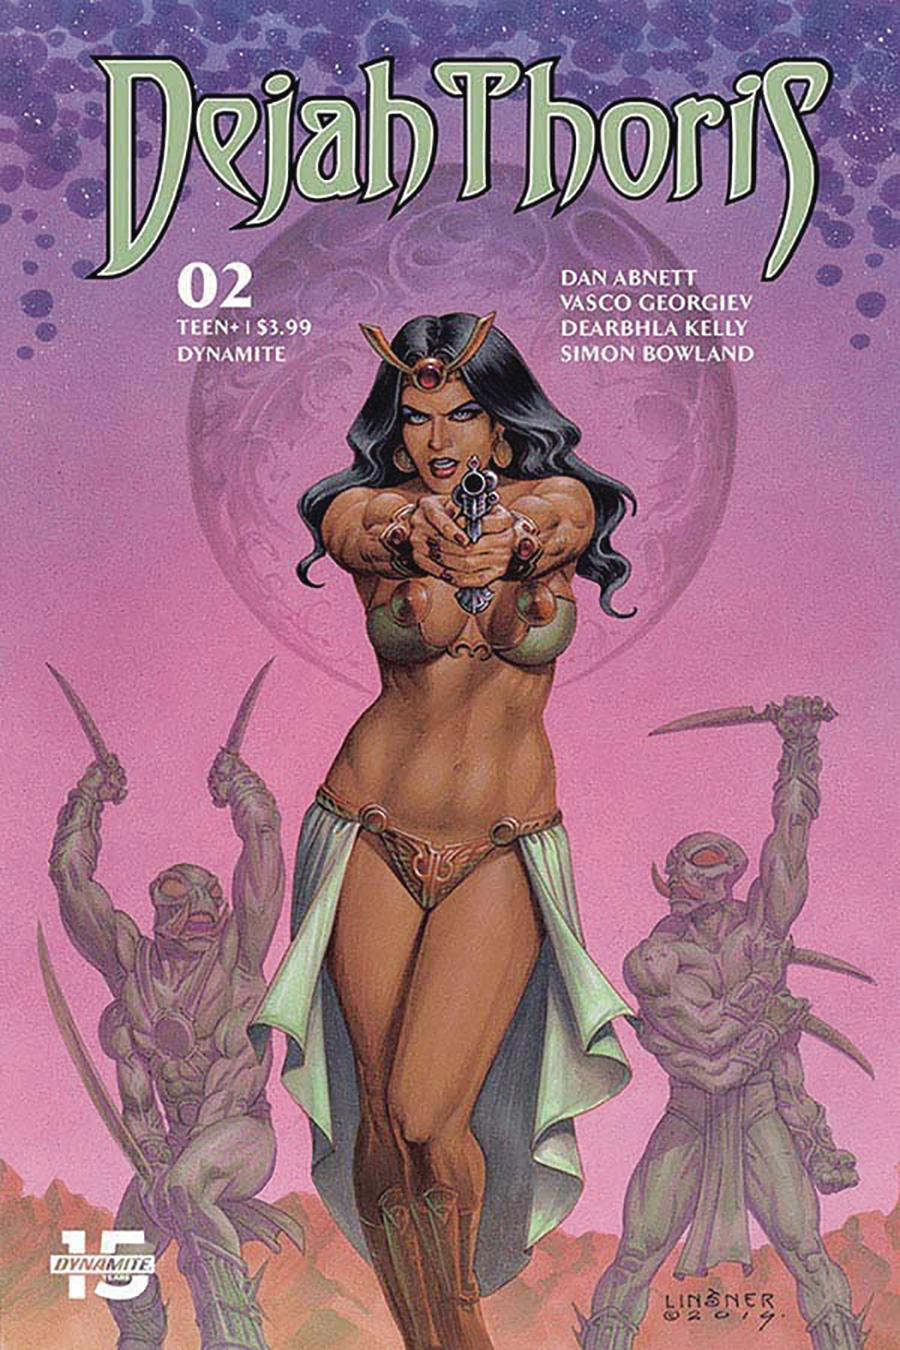 Dejah Thoris Vol 3 #2 Cover C Variant Joseph Michael Linsner Cover